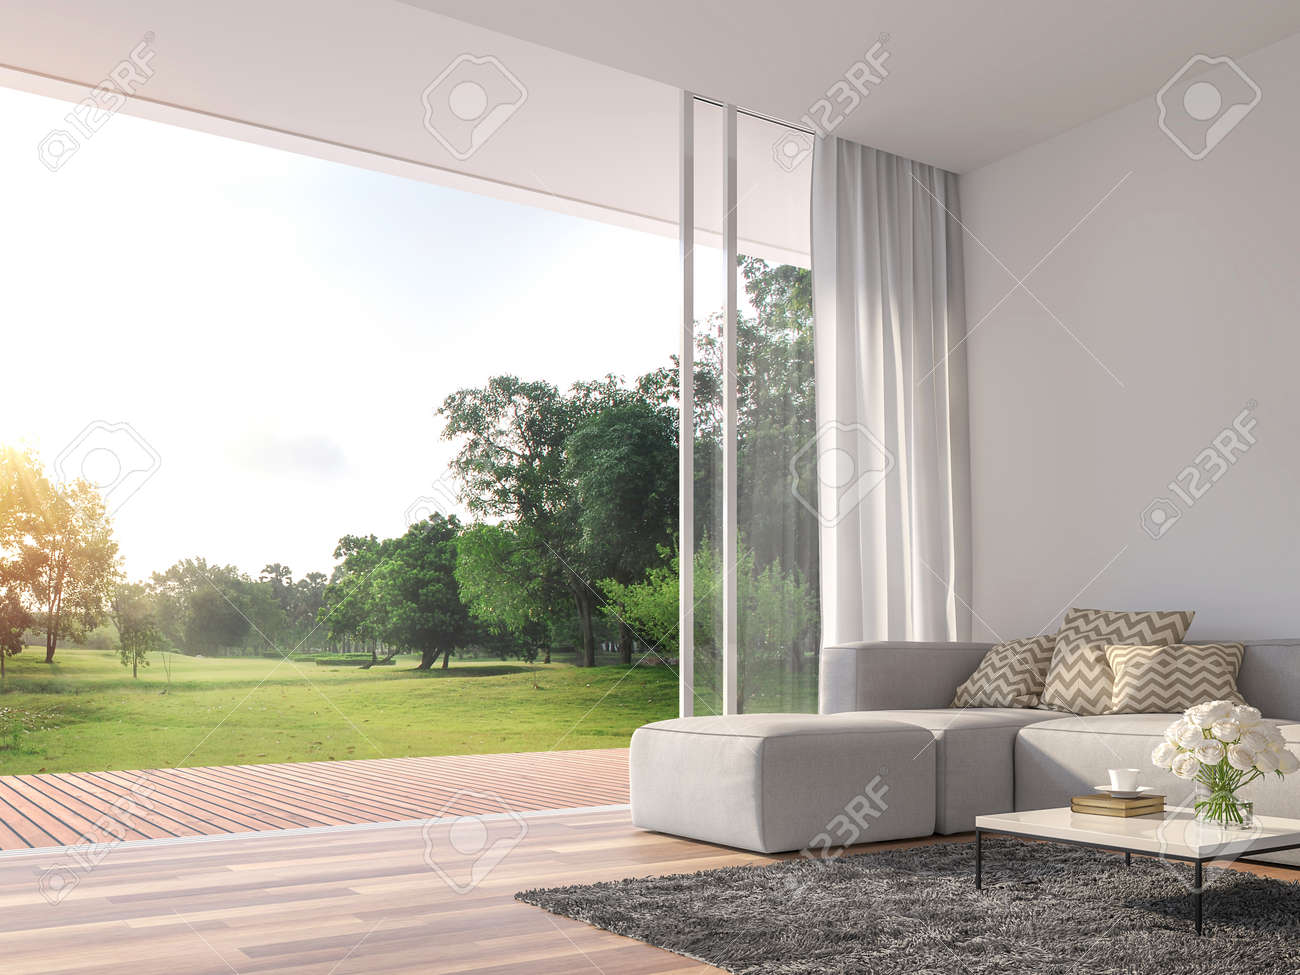 Modern living room 3d render.The Rooms have wooden floors ,decorate with white fabric sofa,There are large open sliding doors, Overlooks wooden terrace and big garden. - 123877435